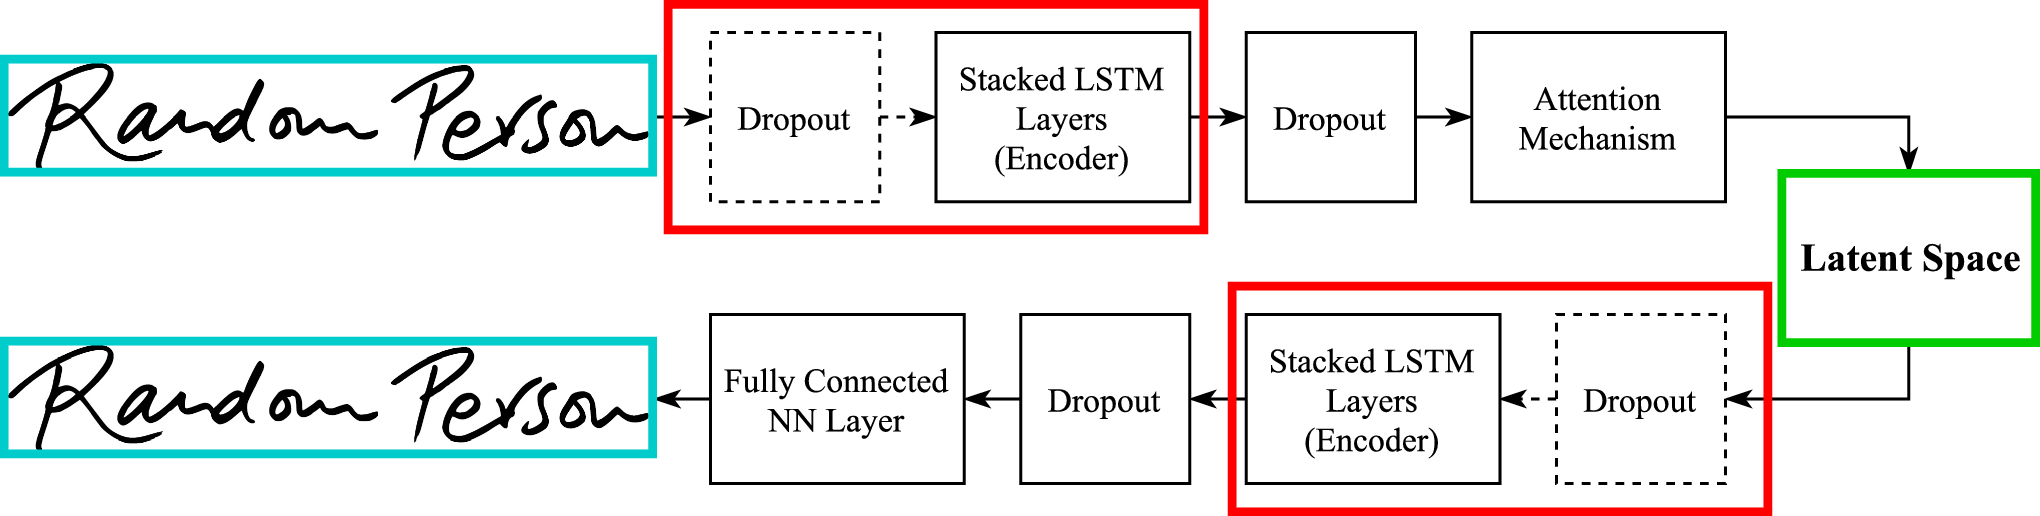 Usage of autoencoders and Siamese networks for online handwritten